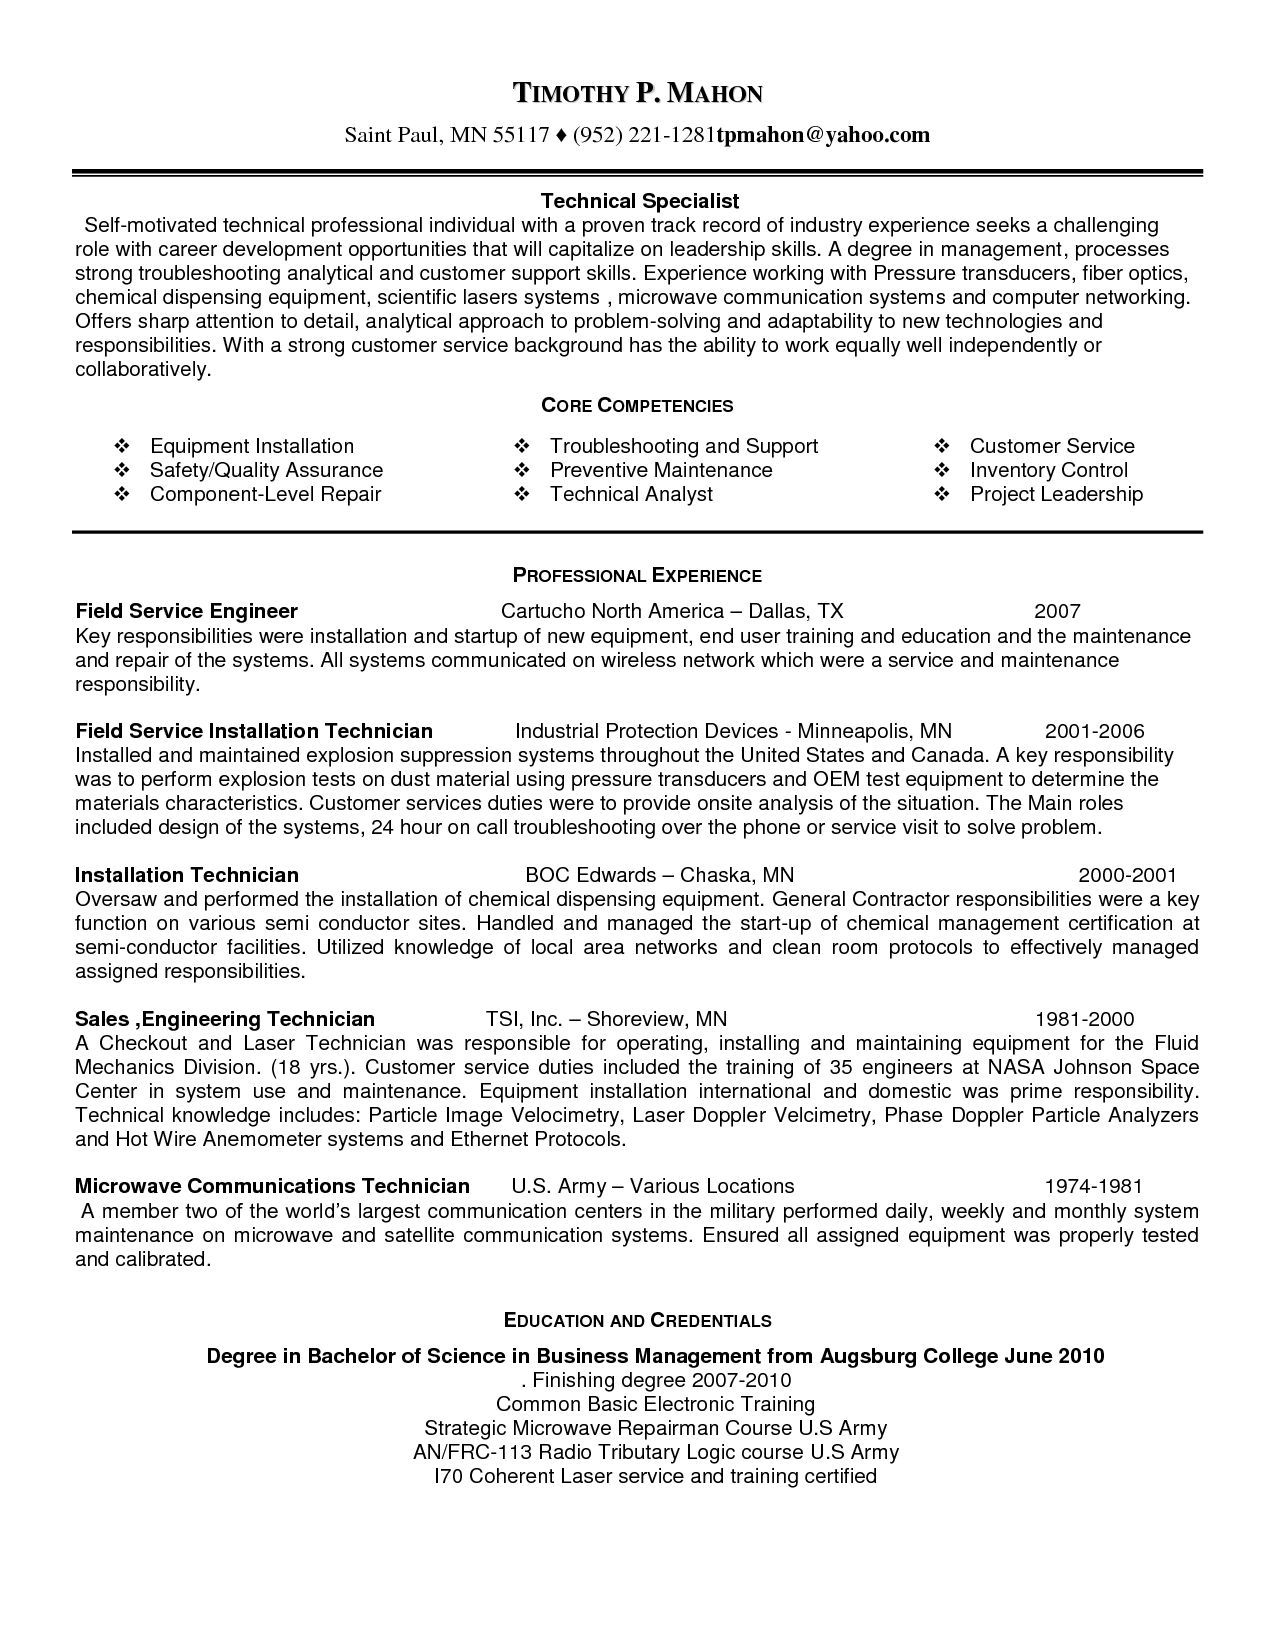 Auto Tech Resume Brilliant Sle Resume For Auto Mechanic 28 Images Car Mechanics Resume Sales .